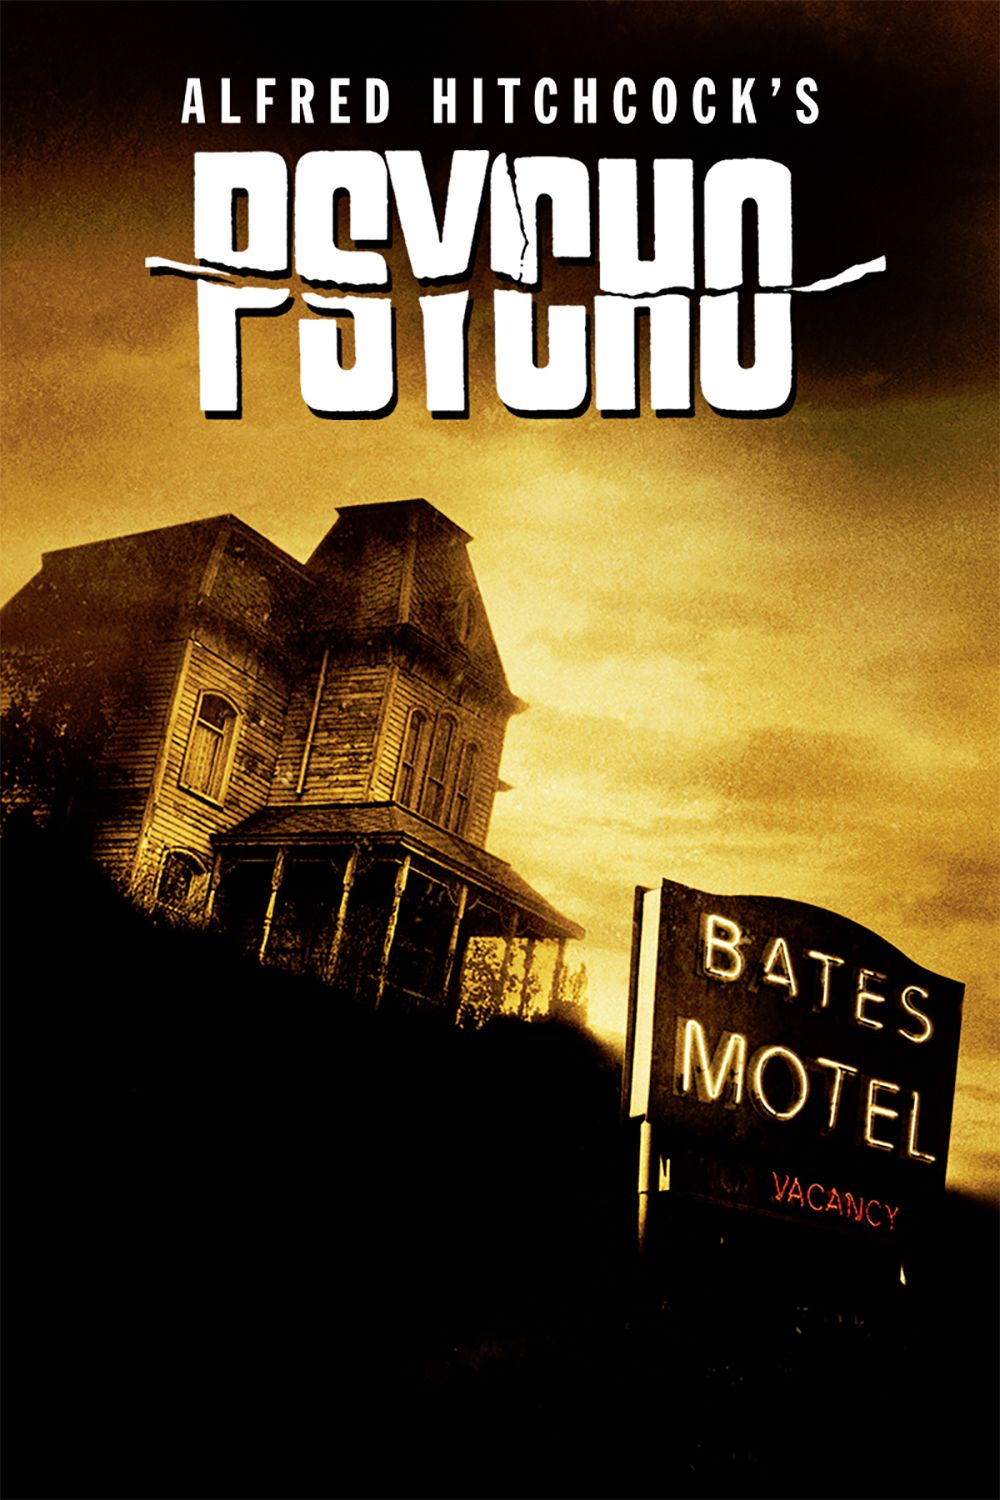 a movie analysis of psycho by alfred hitchcock It's 50 years since alfred hitchcock's psycho was unleashed on a soon-to-be-terrified world even if you've never seen the film you've probably been exposed to its extensive influence alfred hitchcock had made his name as the master of suspense with brilliant, glossy thrillers like rear window.